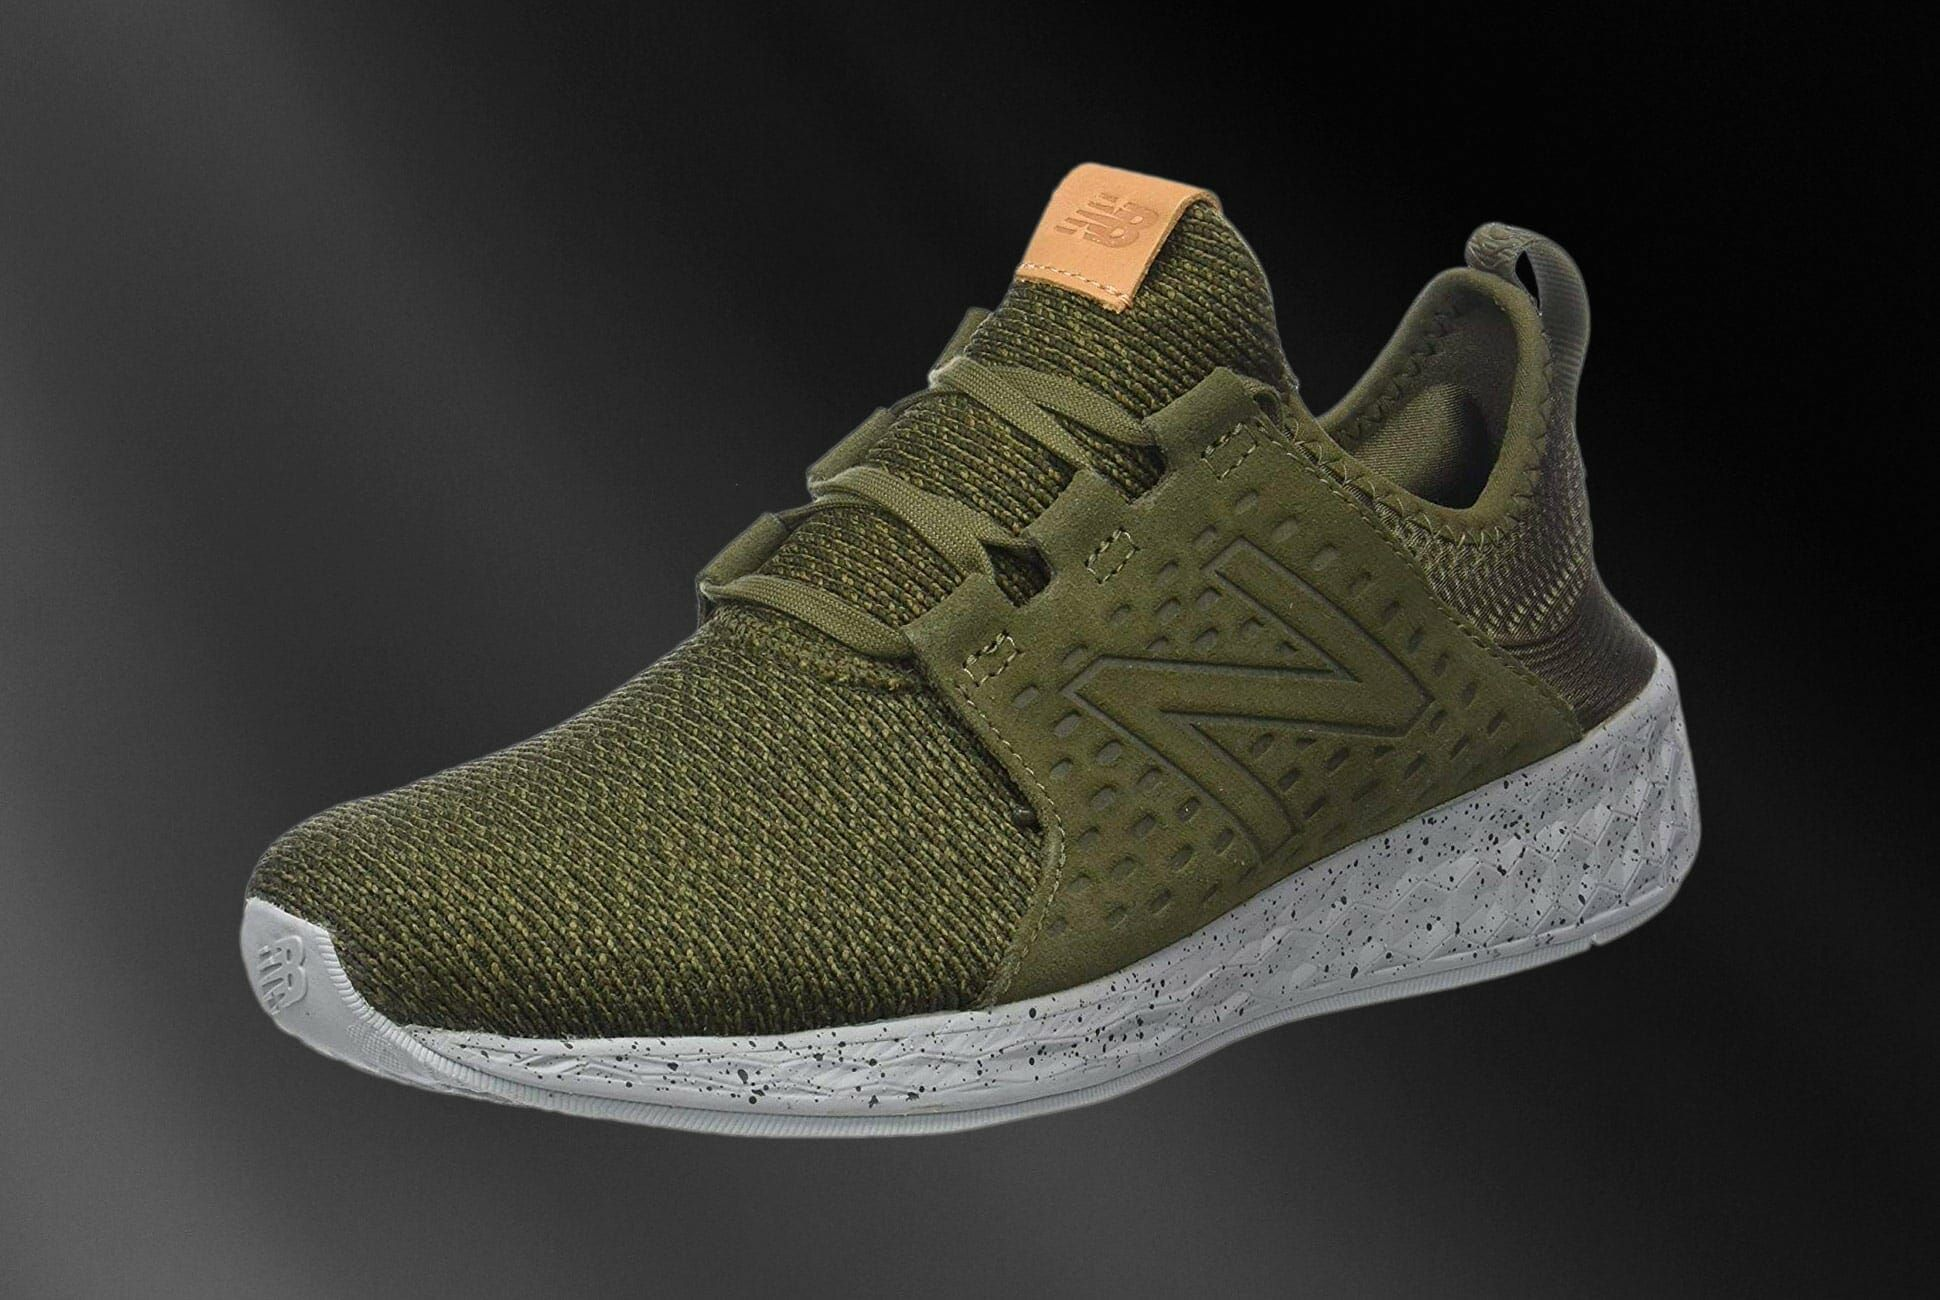 New Balance Fresh Foam Sneakers Are 30% Off